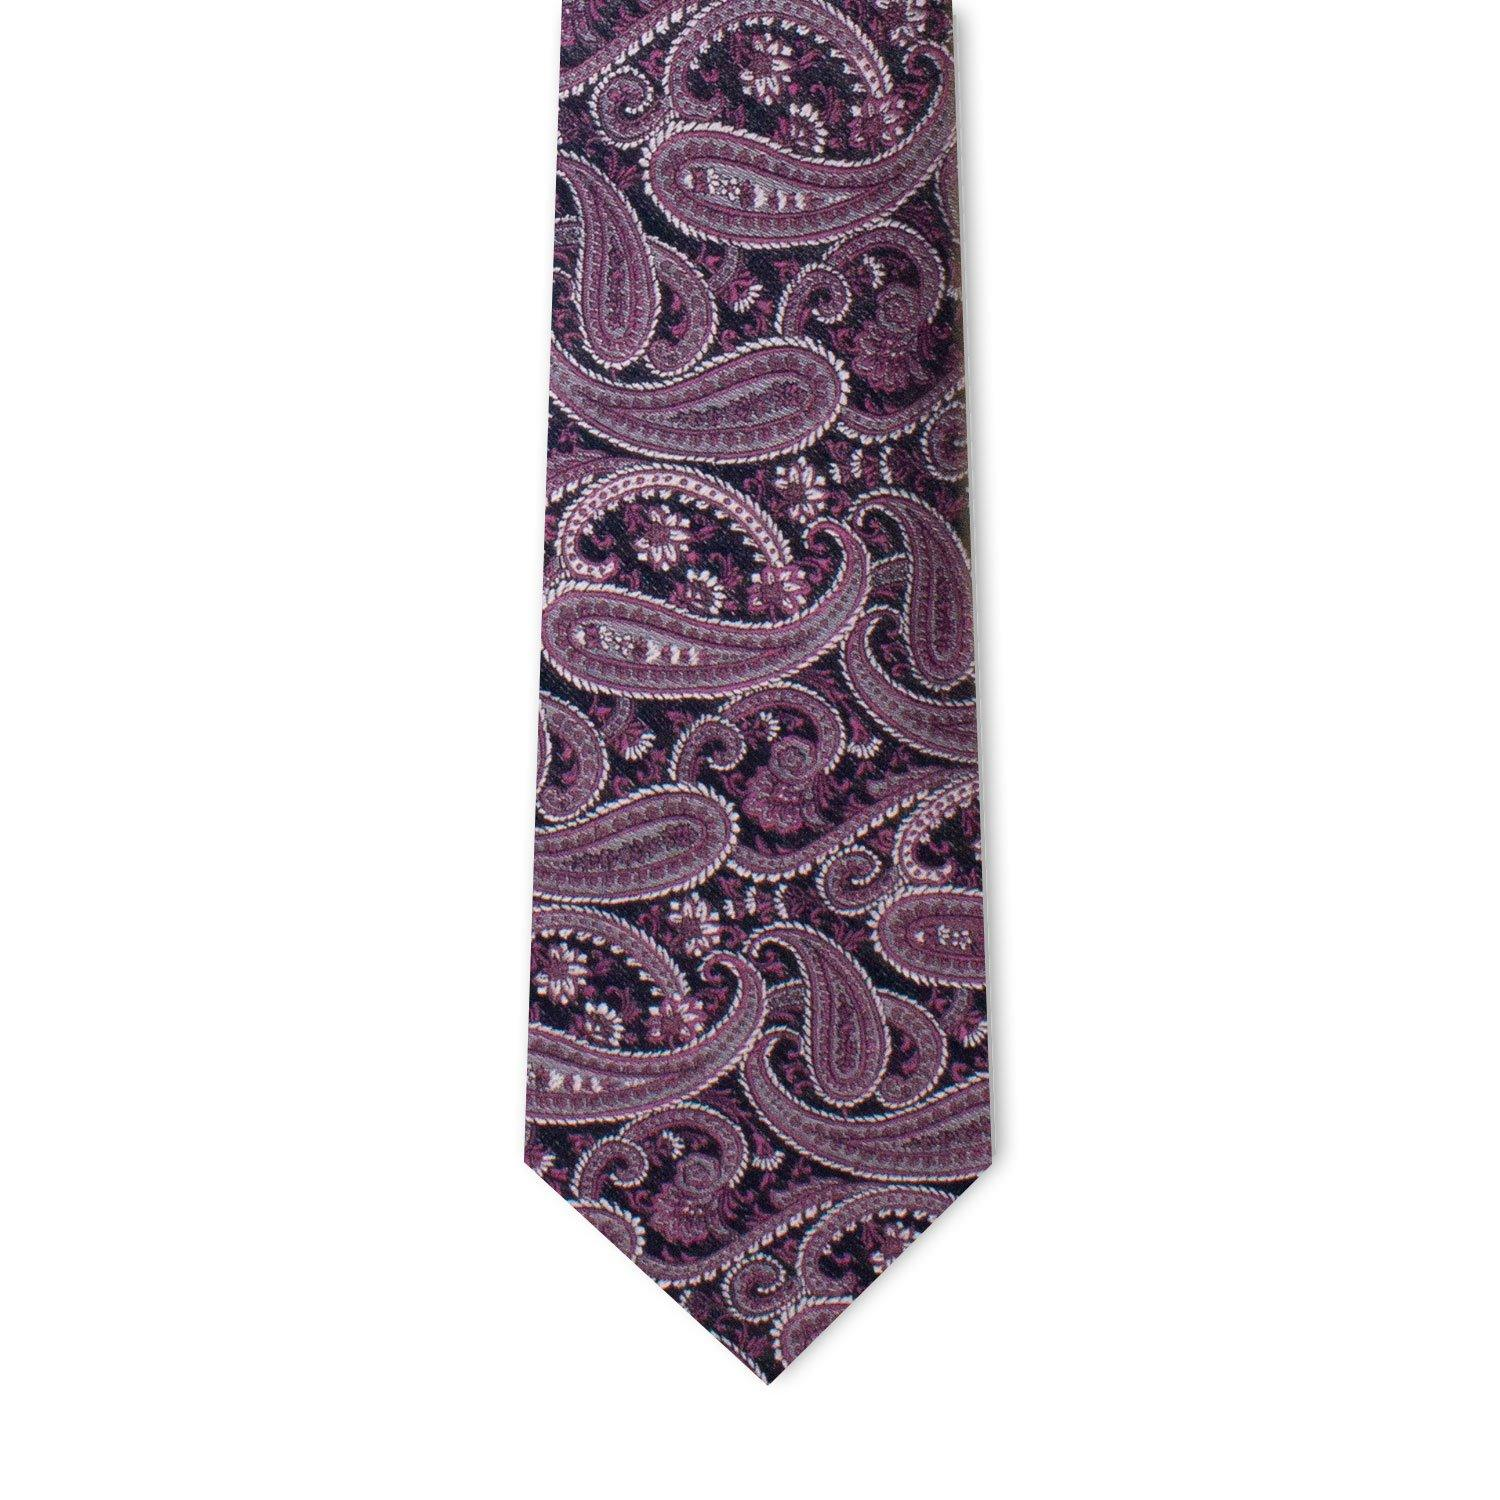 Fuchsia Royal Purple Paisley Neckties Neckties Sirocco Fan Accessories